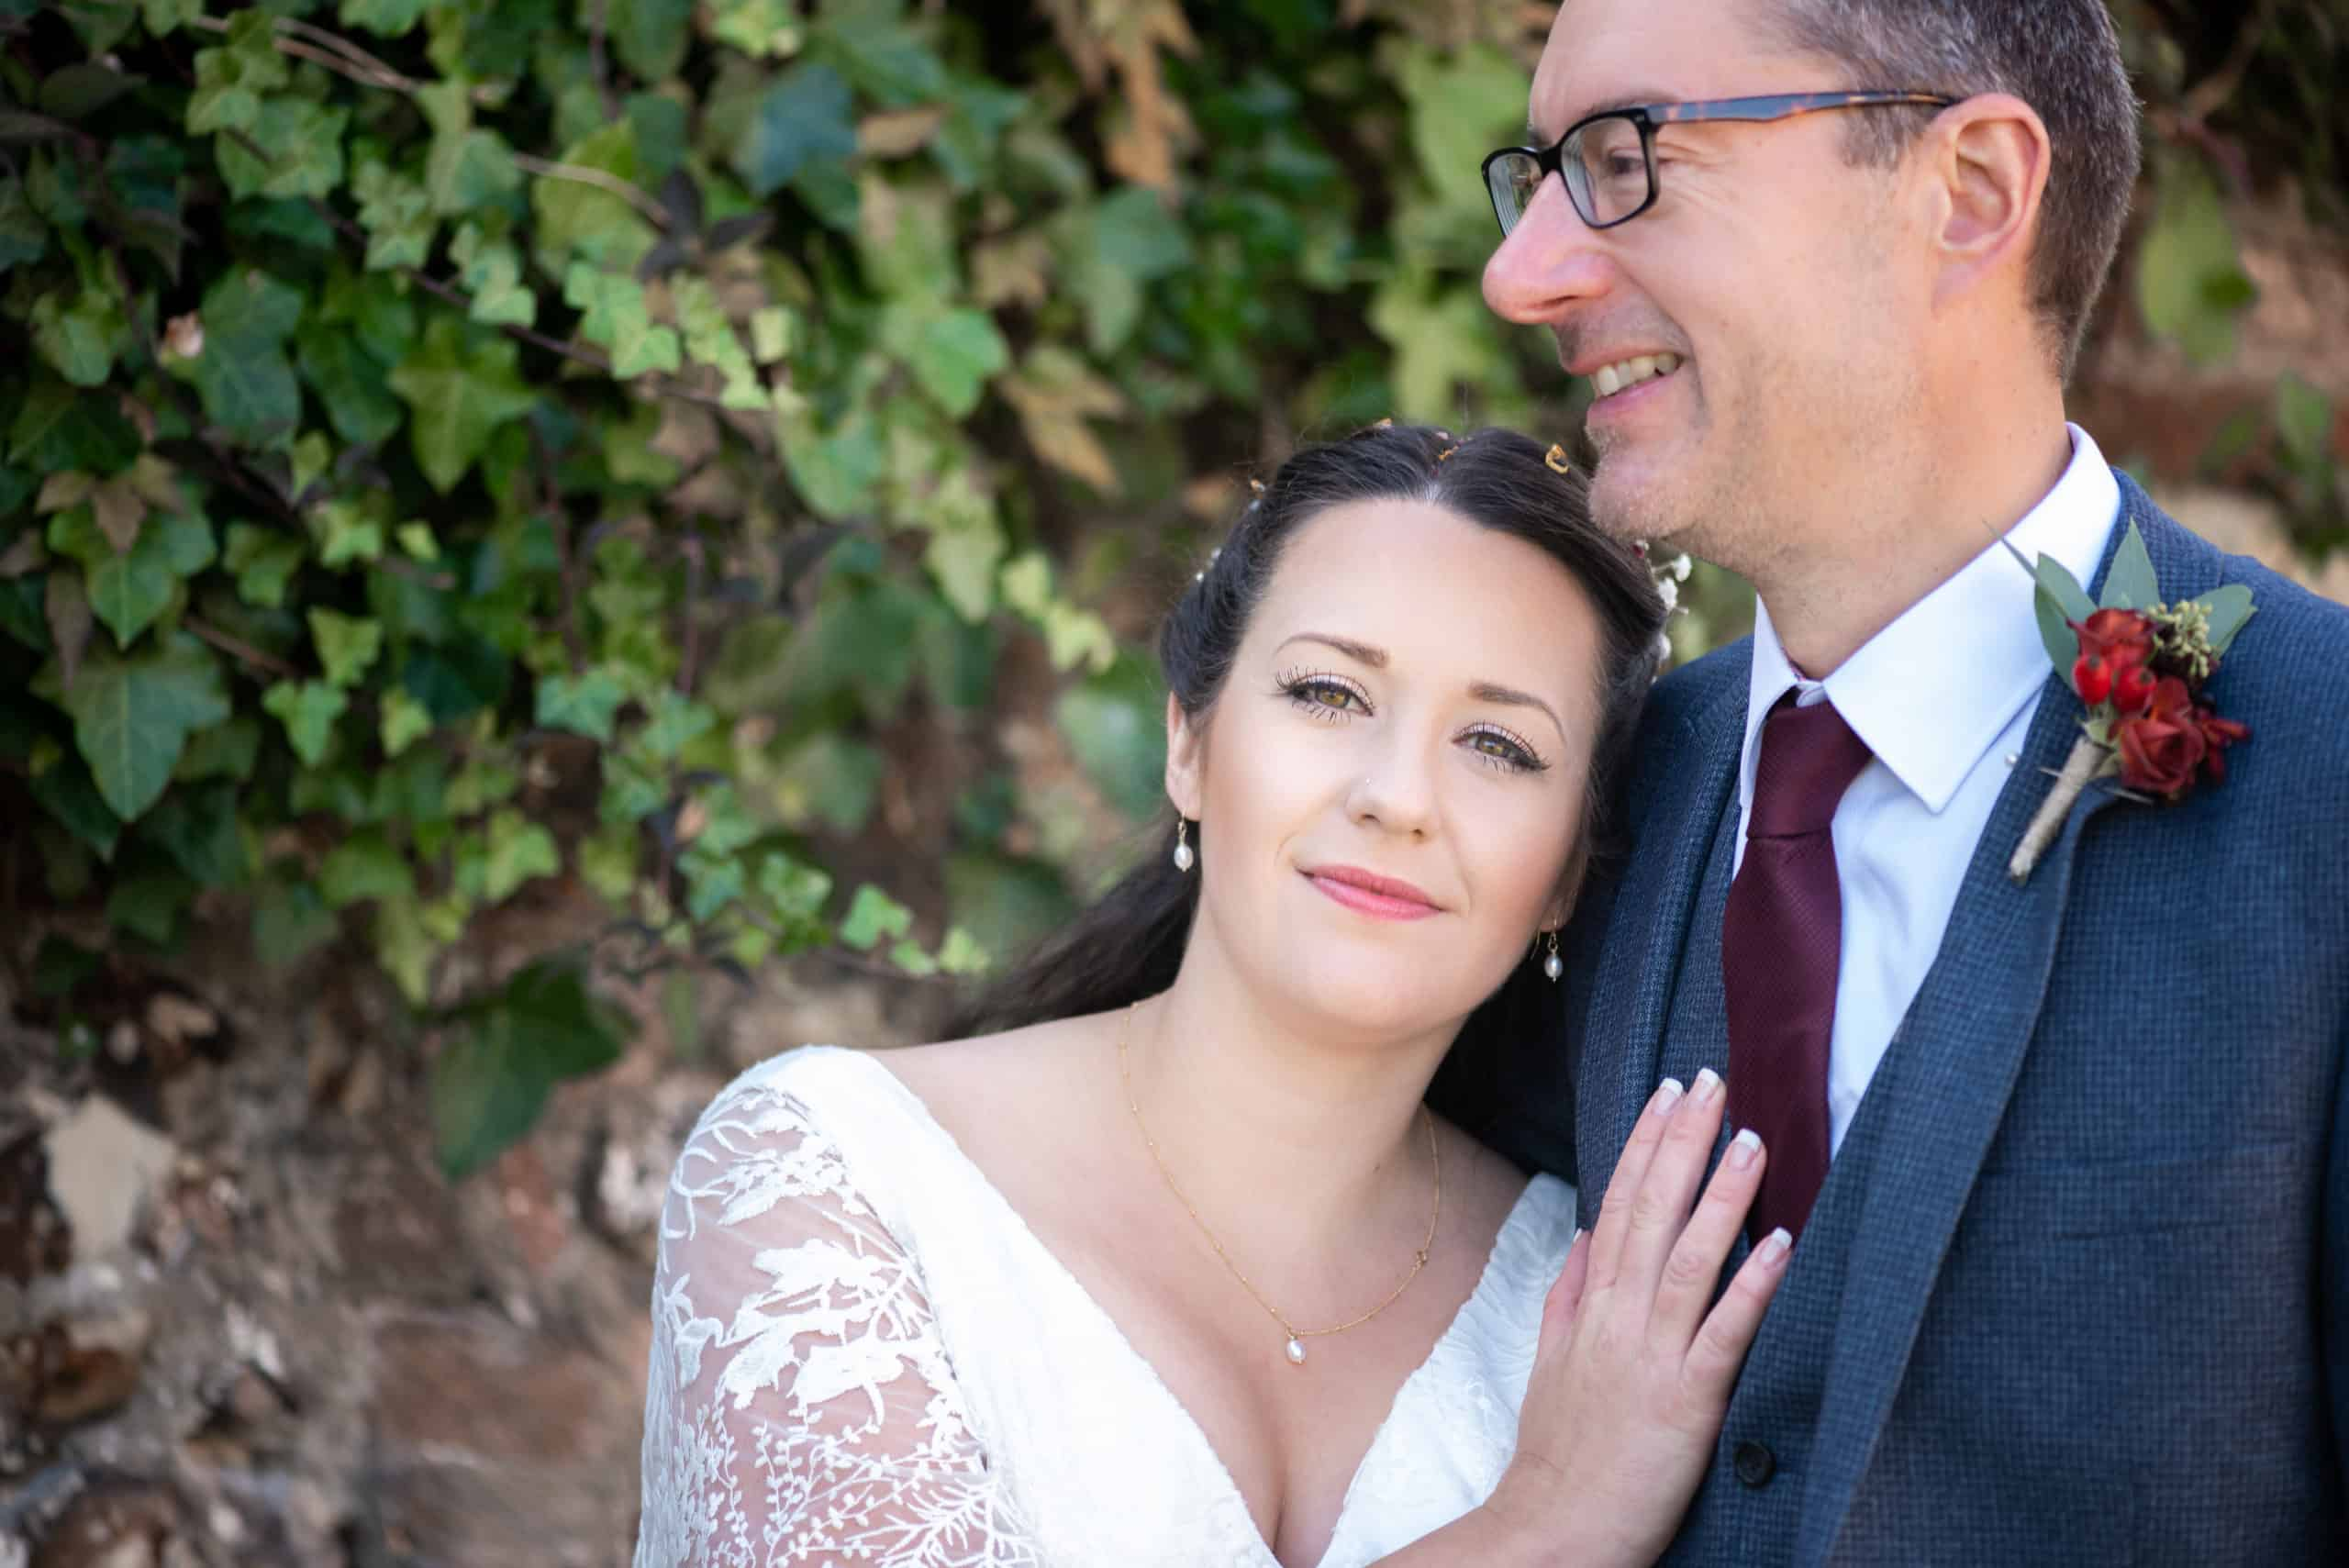 Bride and groom cuddles together on their wedding day in Salisbury hampshire